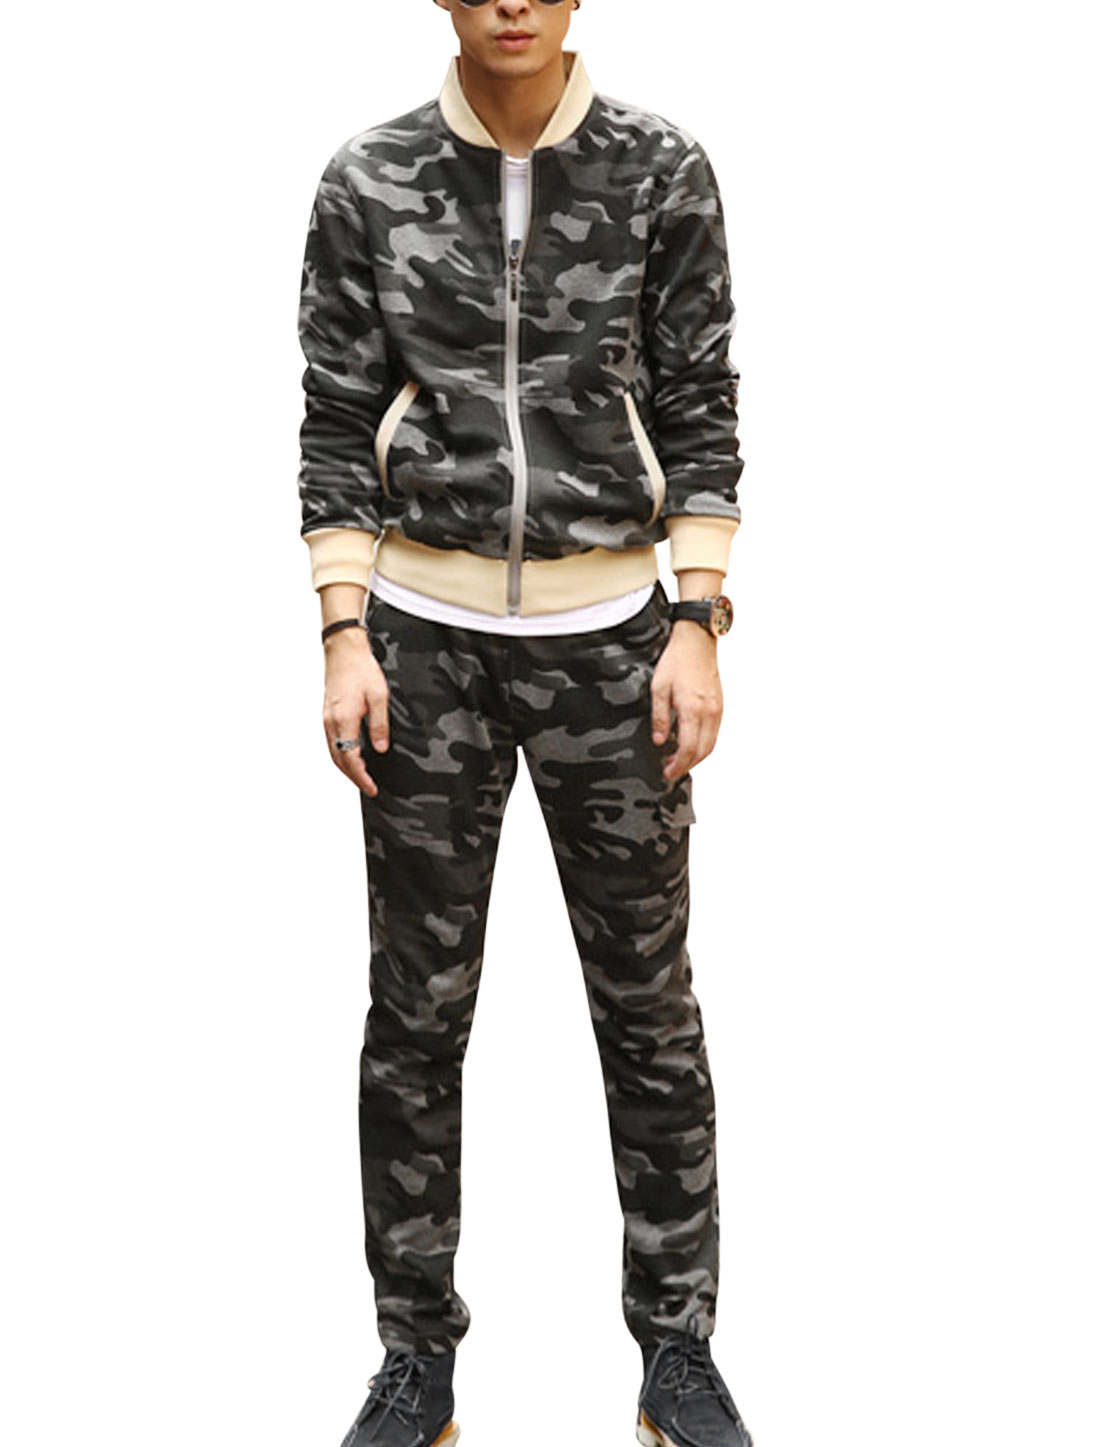 Men Camouflage Pattern Zip Up Jacket w Elastic Waist Pants Army Green Gray S